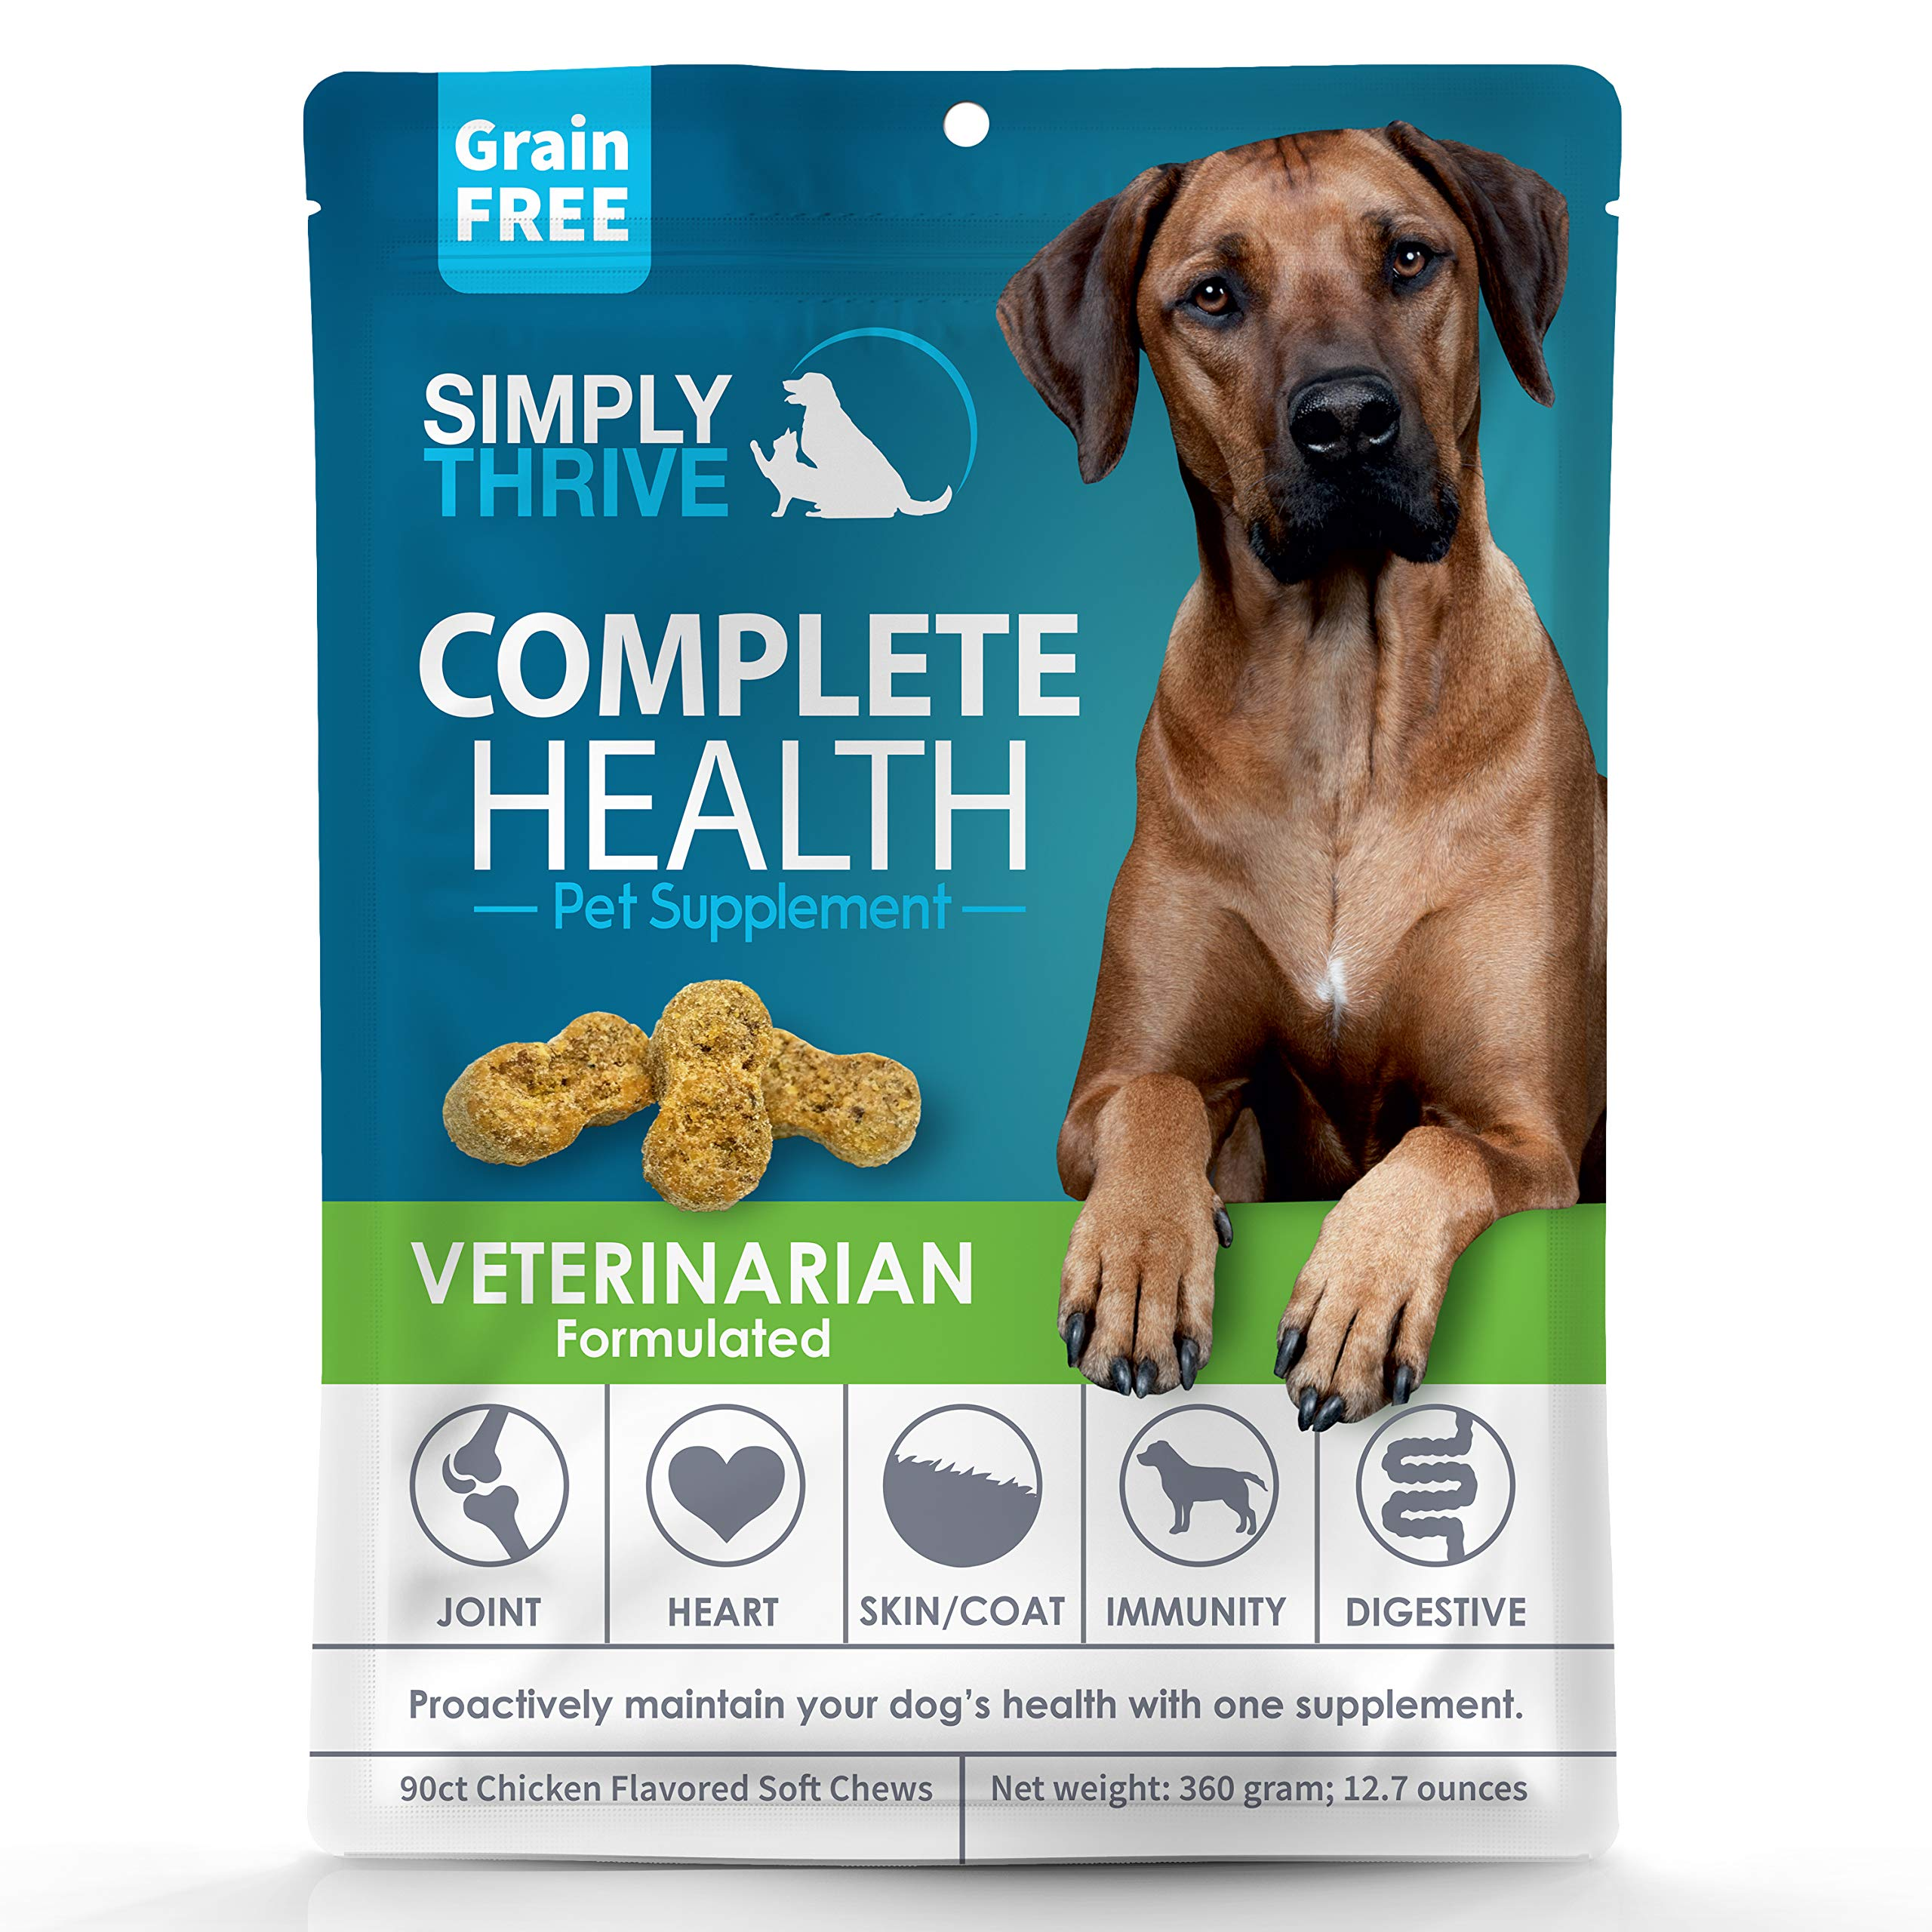 Complete Health Multivitamin Supplement for Dogs | 90 ct Soft Chew Treats | Glucosamine Helps with Mobility Hip Joint & Arthritis | Salmon Oil Aids Skin Coat and Heart Health | Includes Probiotics